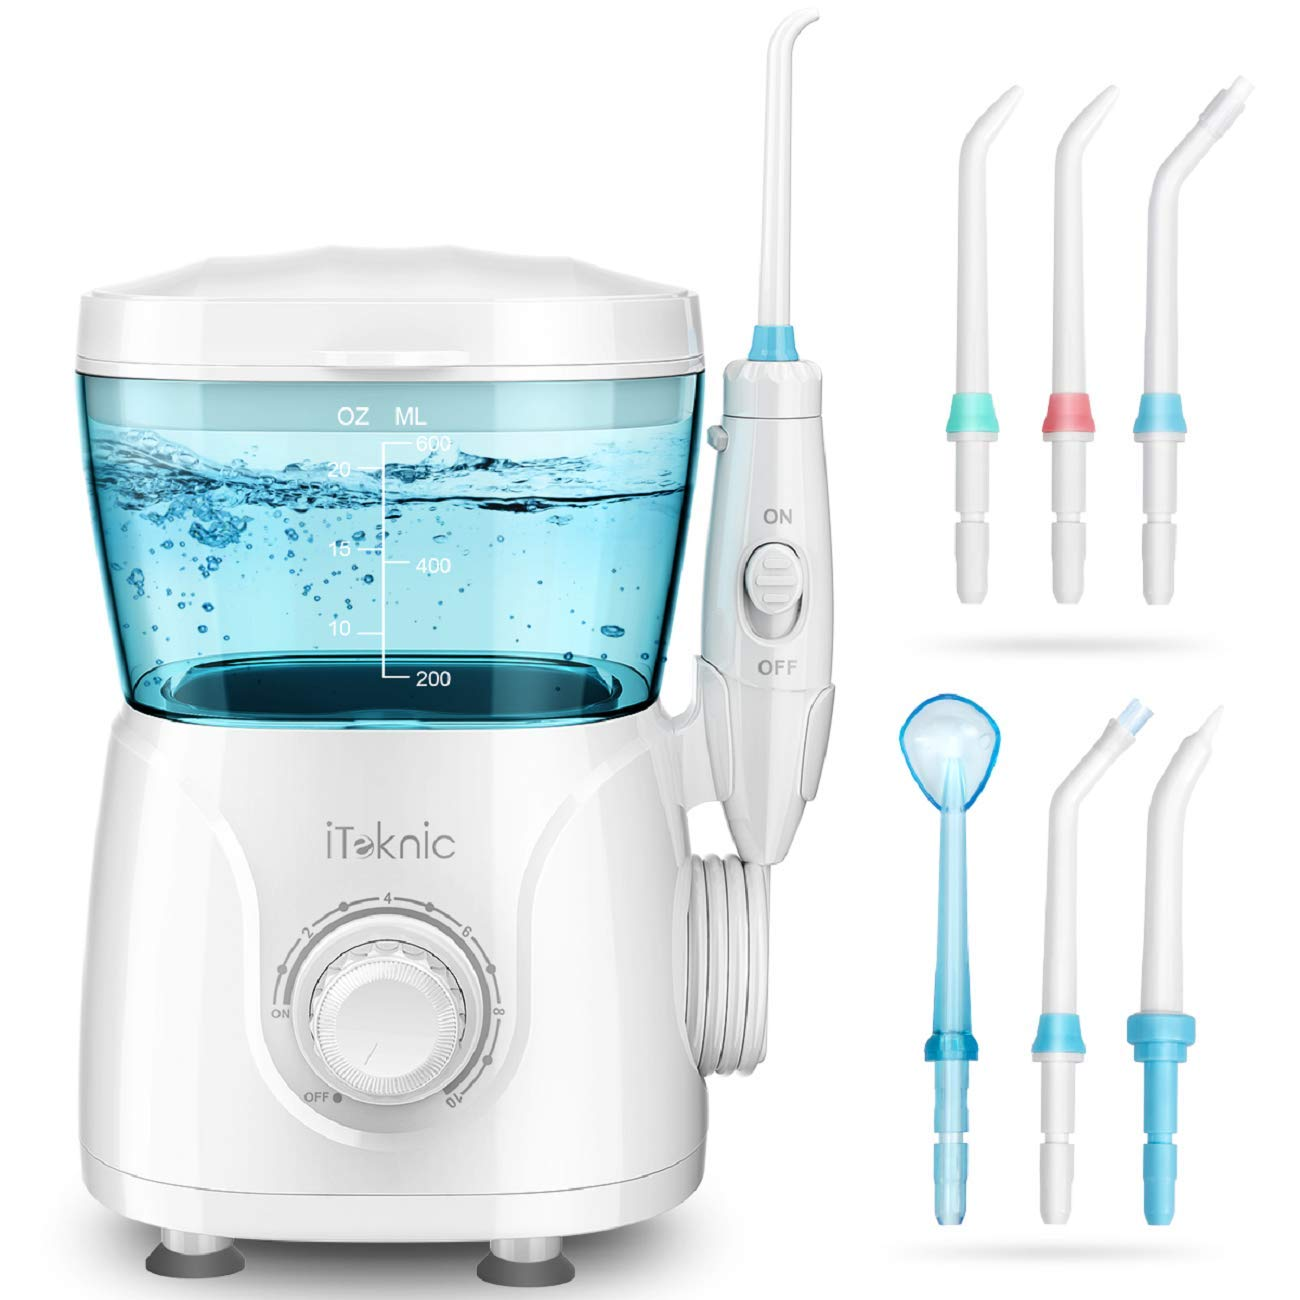 iTeknic Water Flosser Dental Oral Irrigator for Teeth Brace Clean with 10 Adjustable Water Pressure, 600ml Capacity, 7 Jet Tips, 180Sec Electric Professional Flosser for Family,FDA Approved by iTeknic